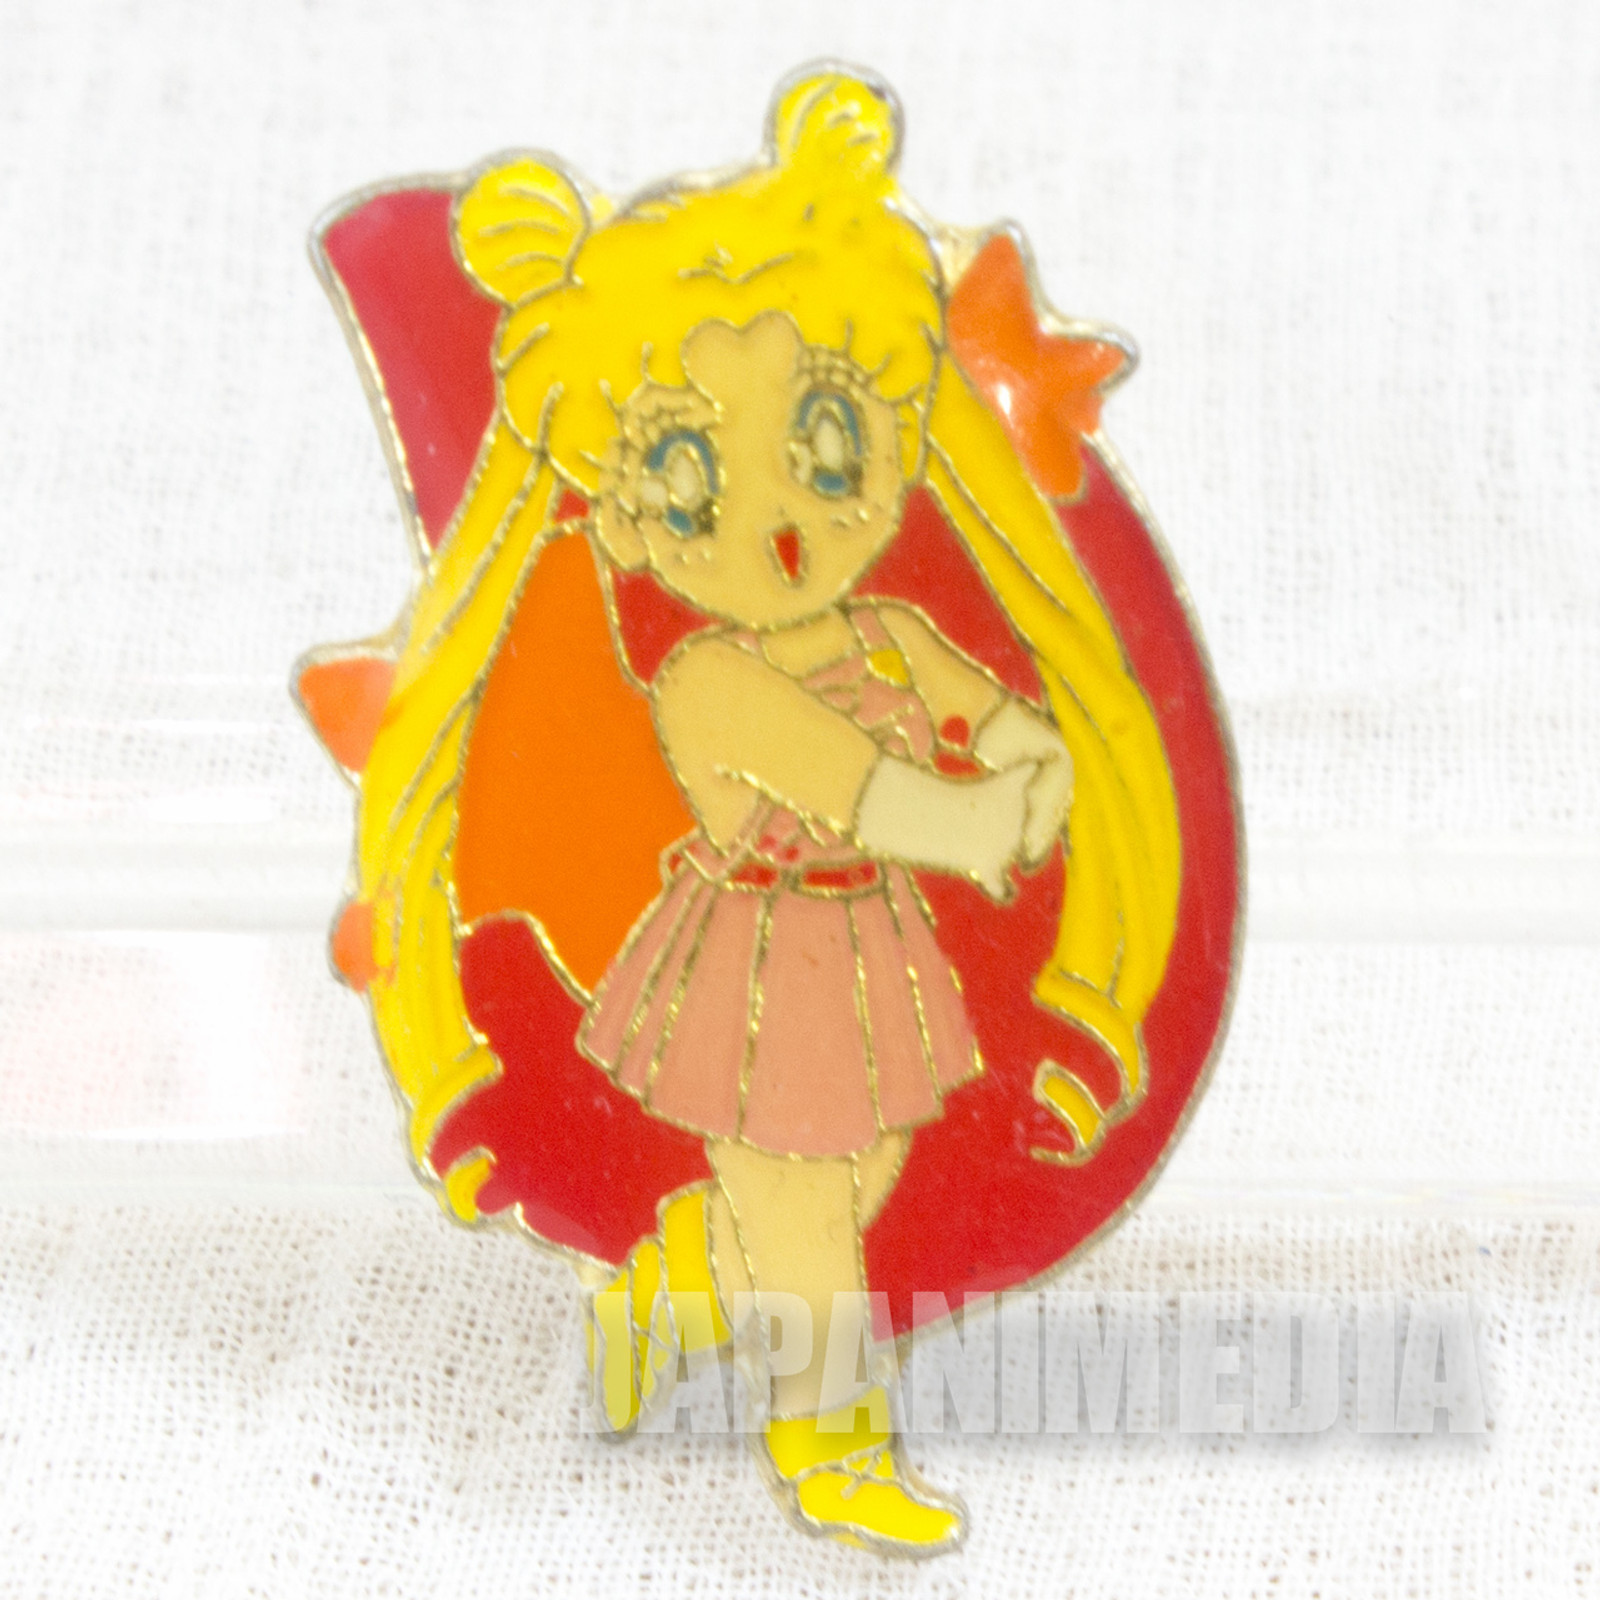 Sailor Moon Usagi Tsukino Metal Pins Badge JAPAN ANIME MANGA 5